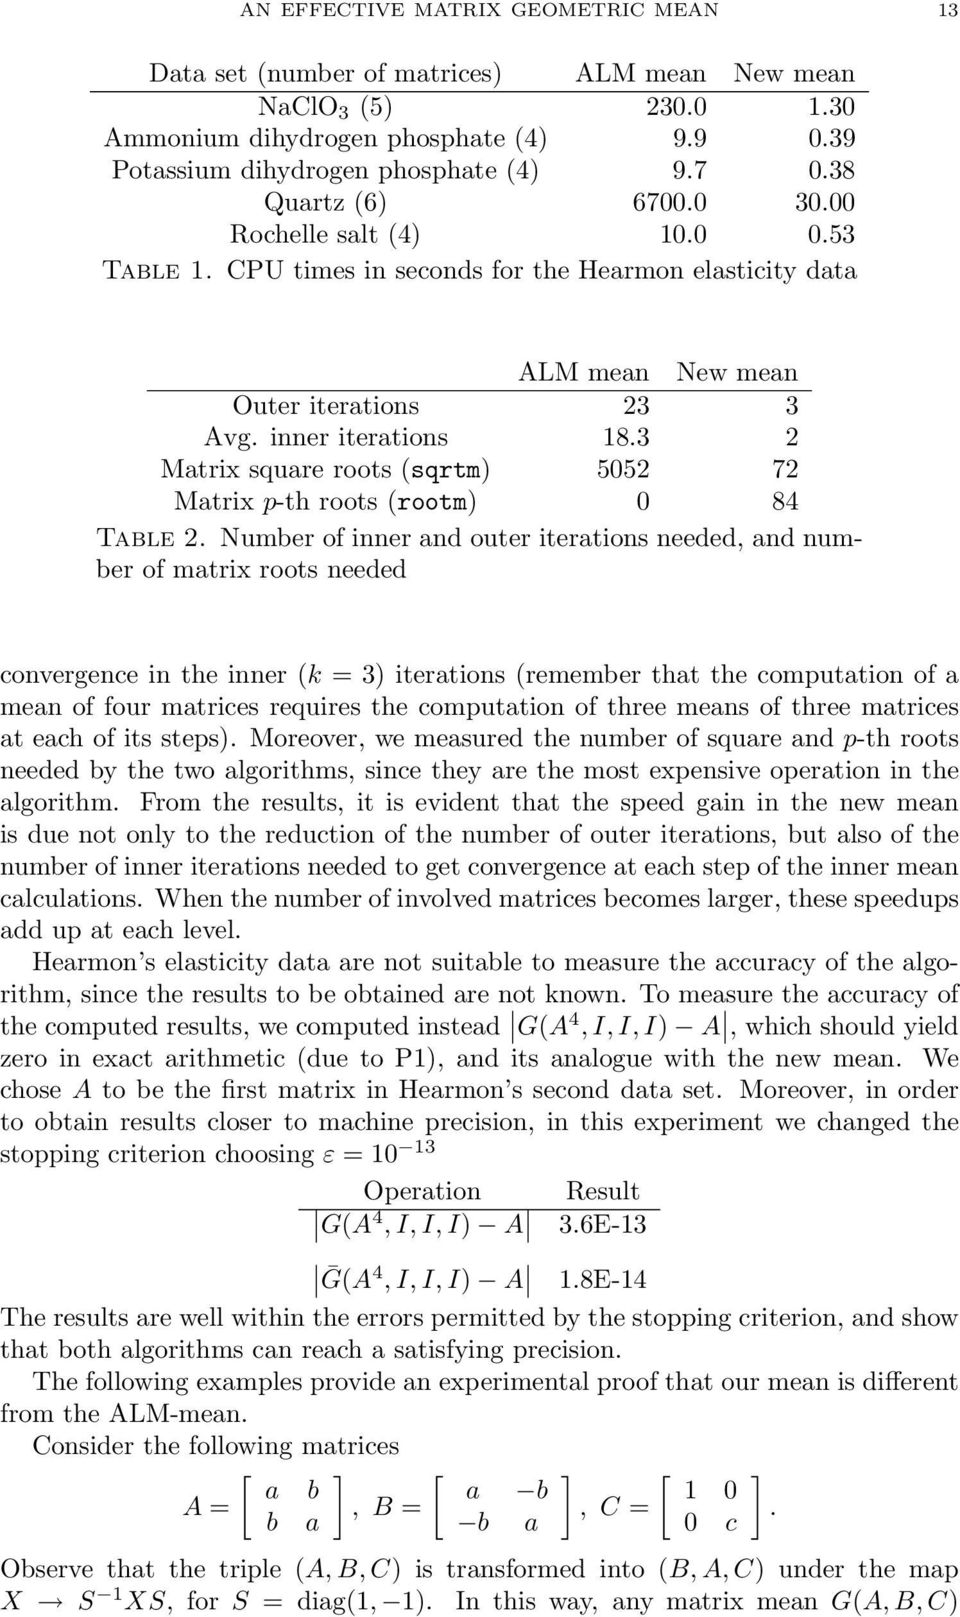 Number of nner and outer teratons needed, and number of matrx roots needed convergence n the nner ( = 3) teratons (remember that the computaton of a mean of four matrces requres the computaton of